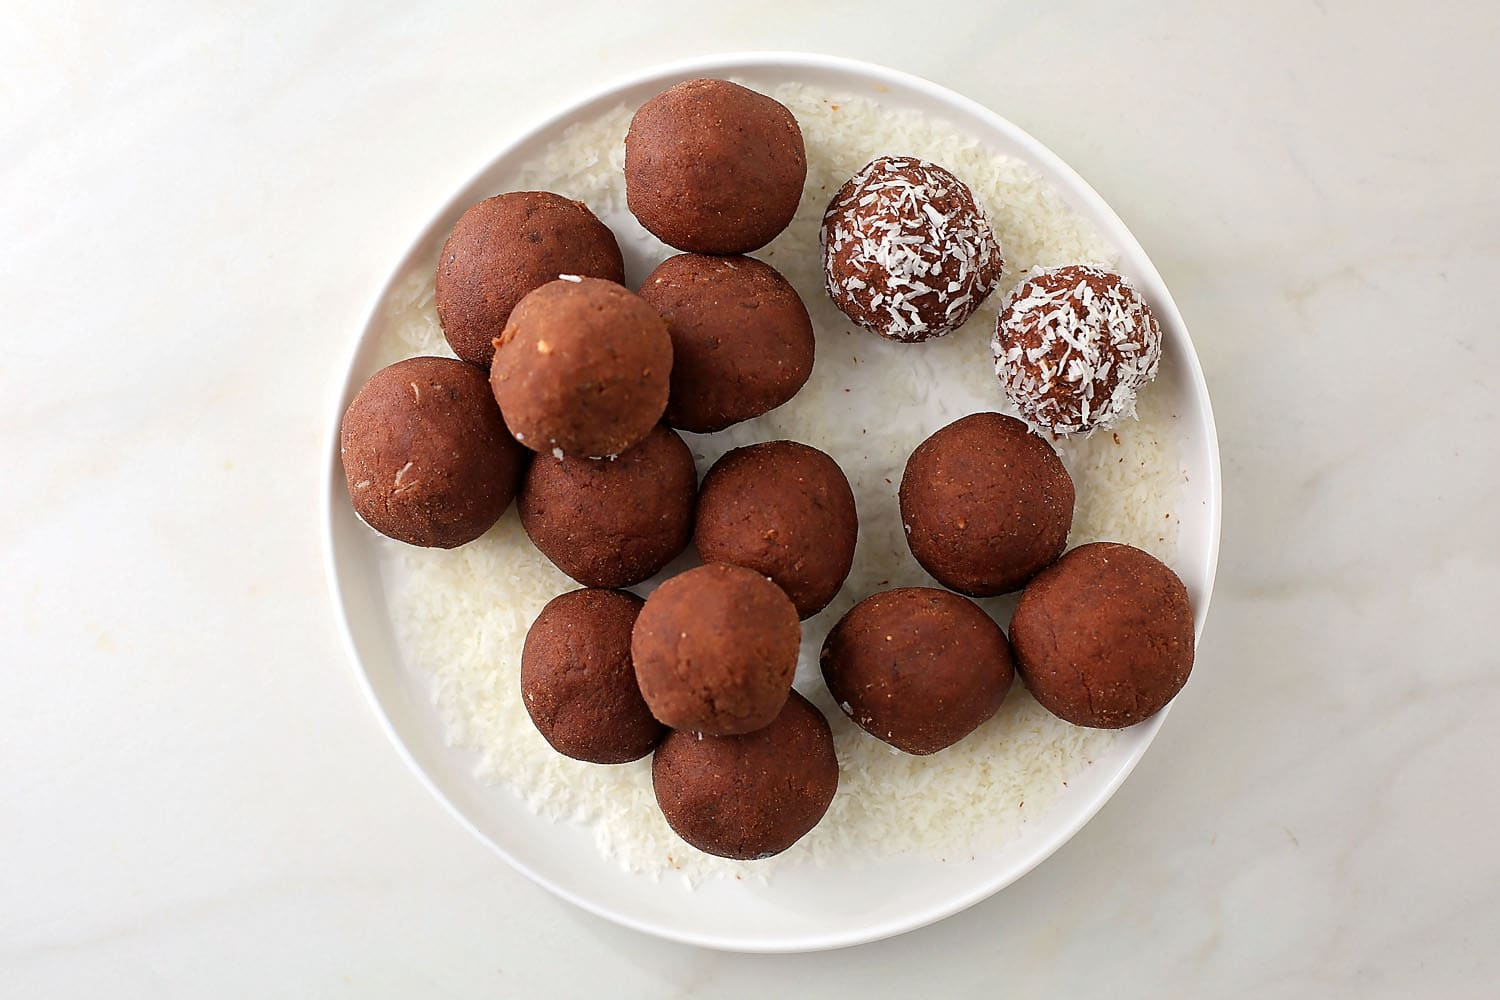 No-Bake Chocolate Truffles balls in the plate with coconut flakes